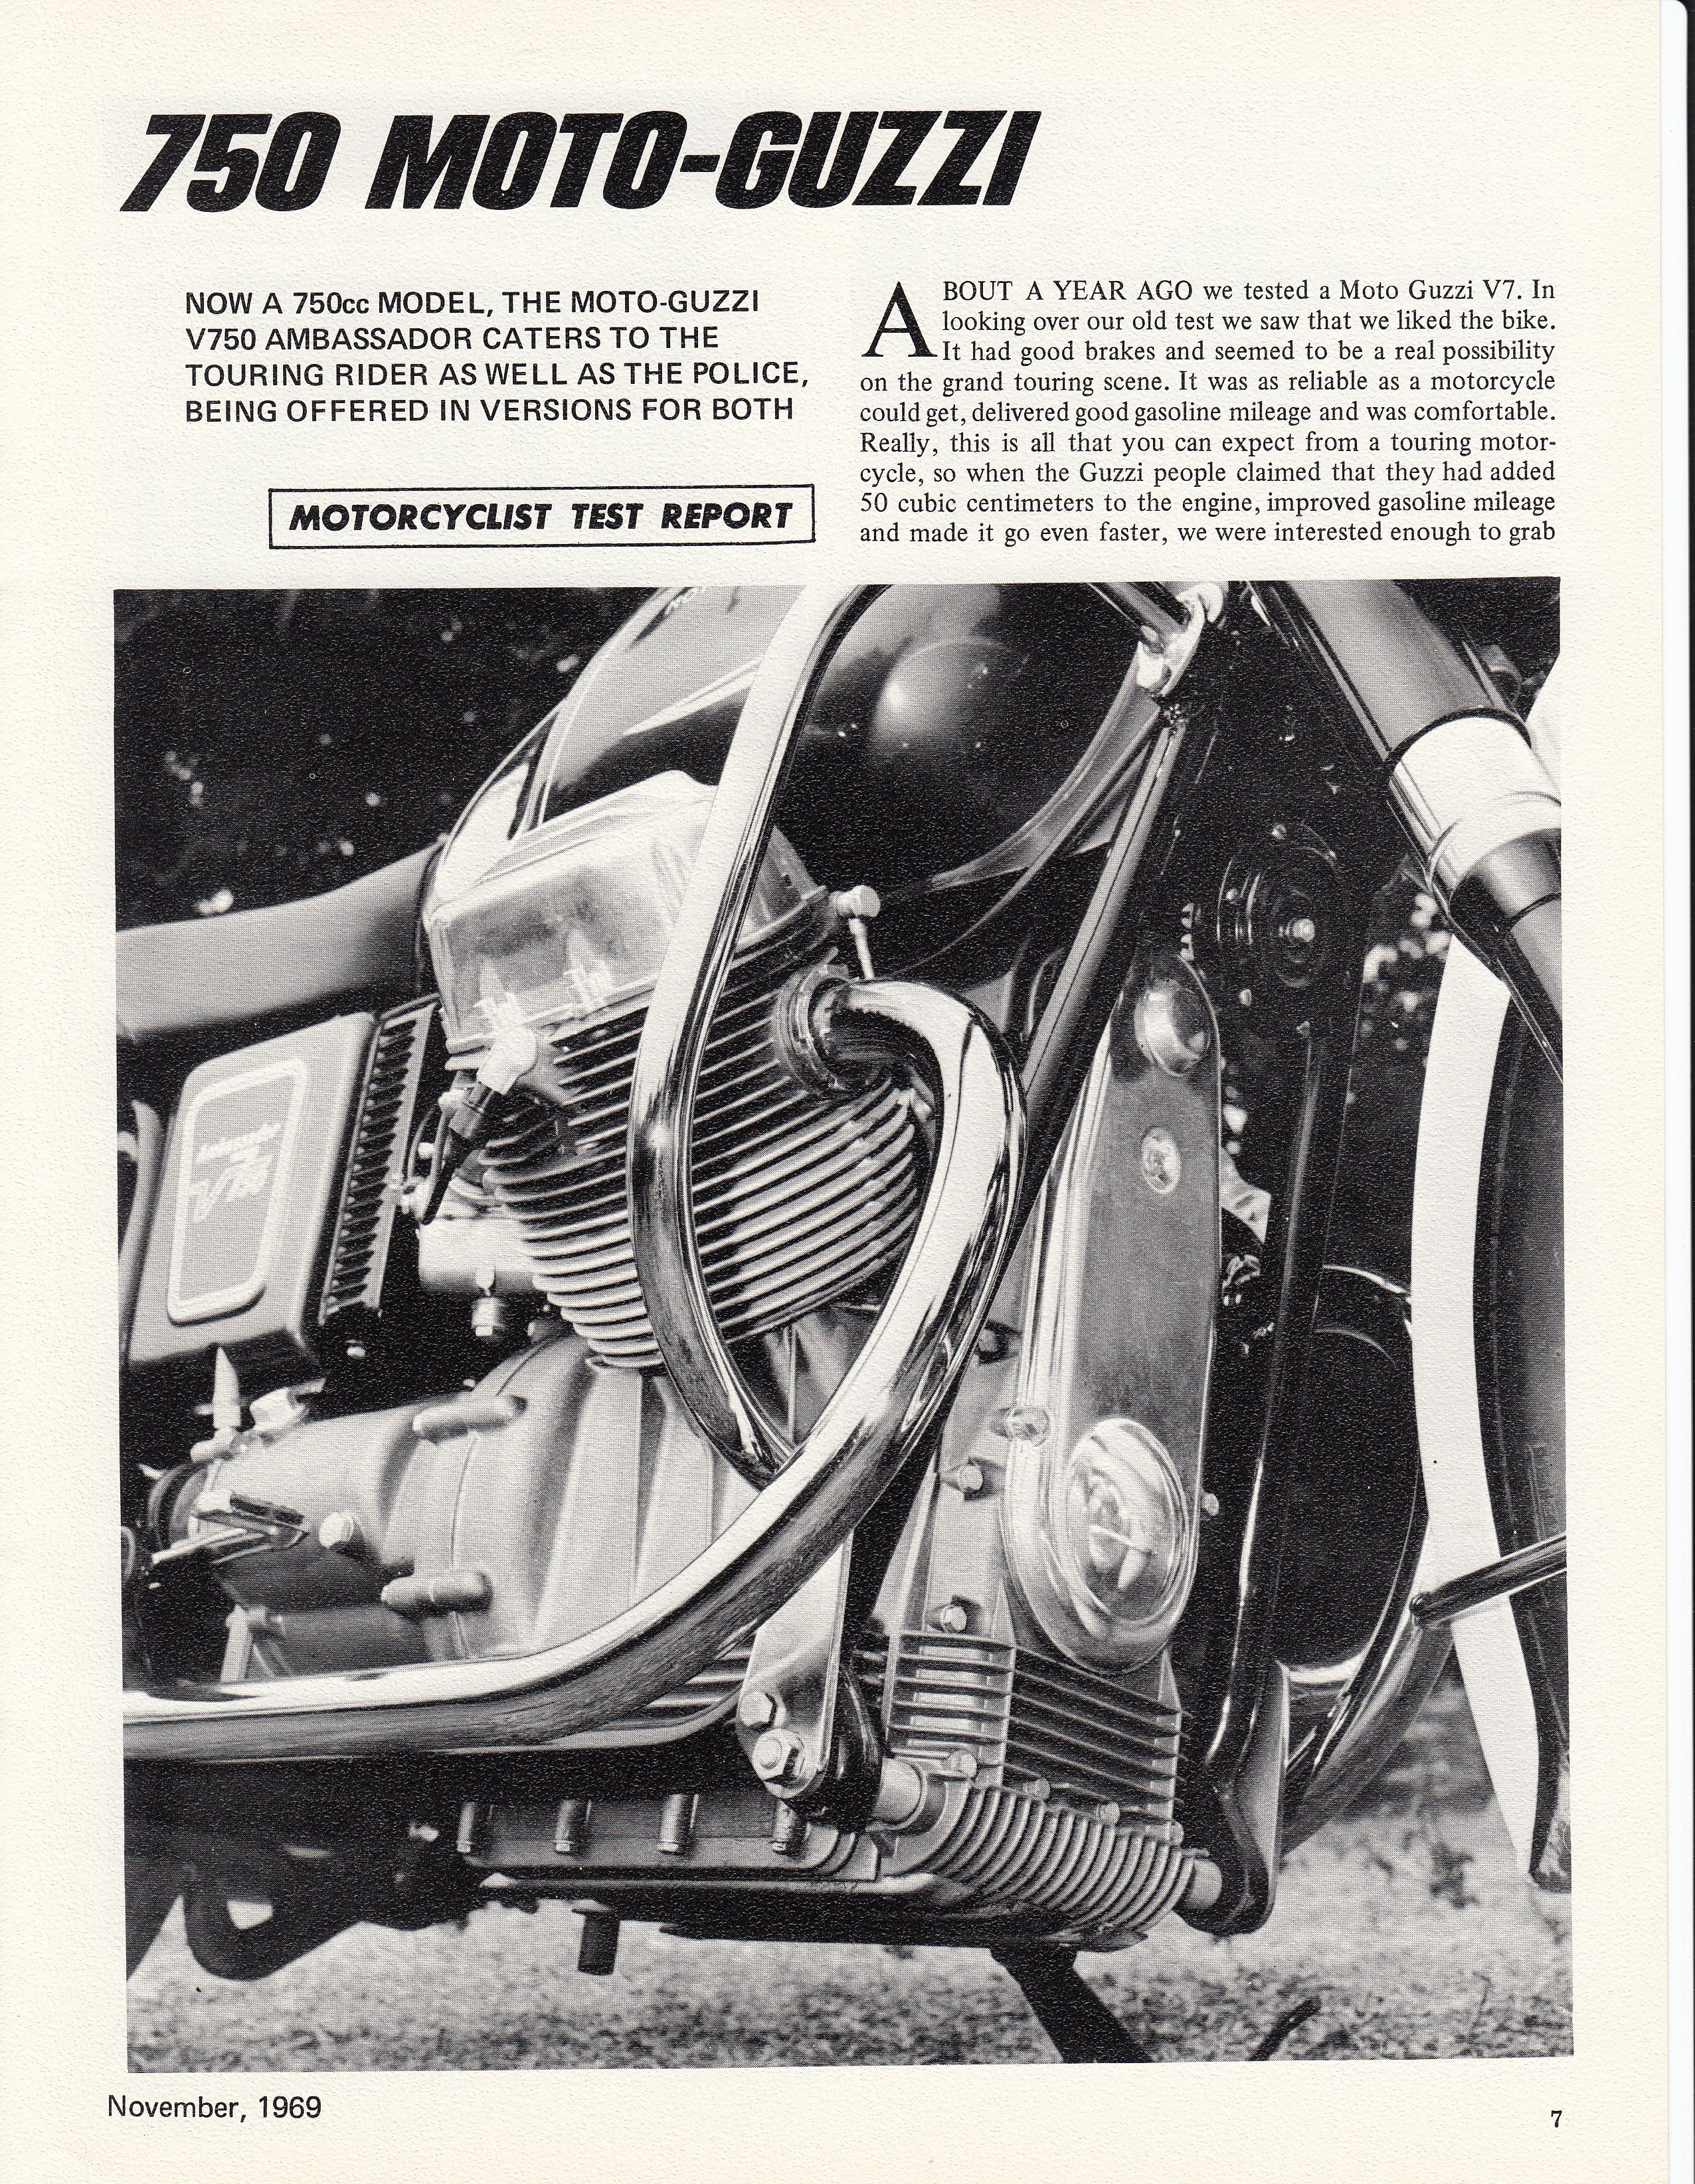 Moto Guzzi Ambassador factory brochure of magazine reviews, Page 7 of 16.